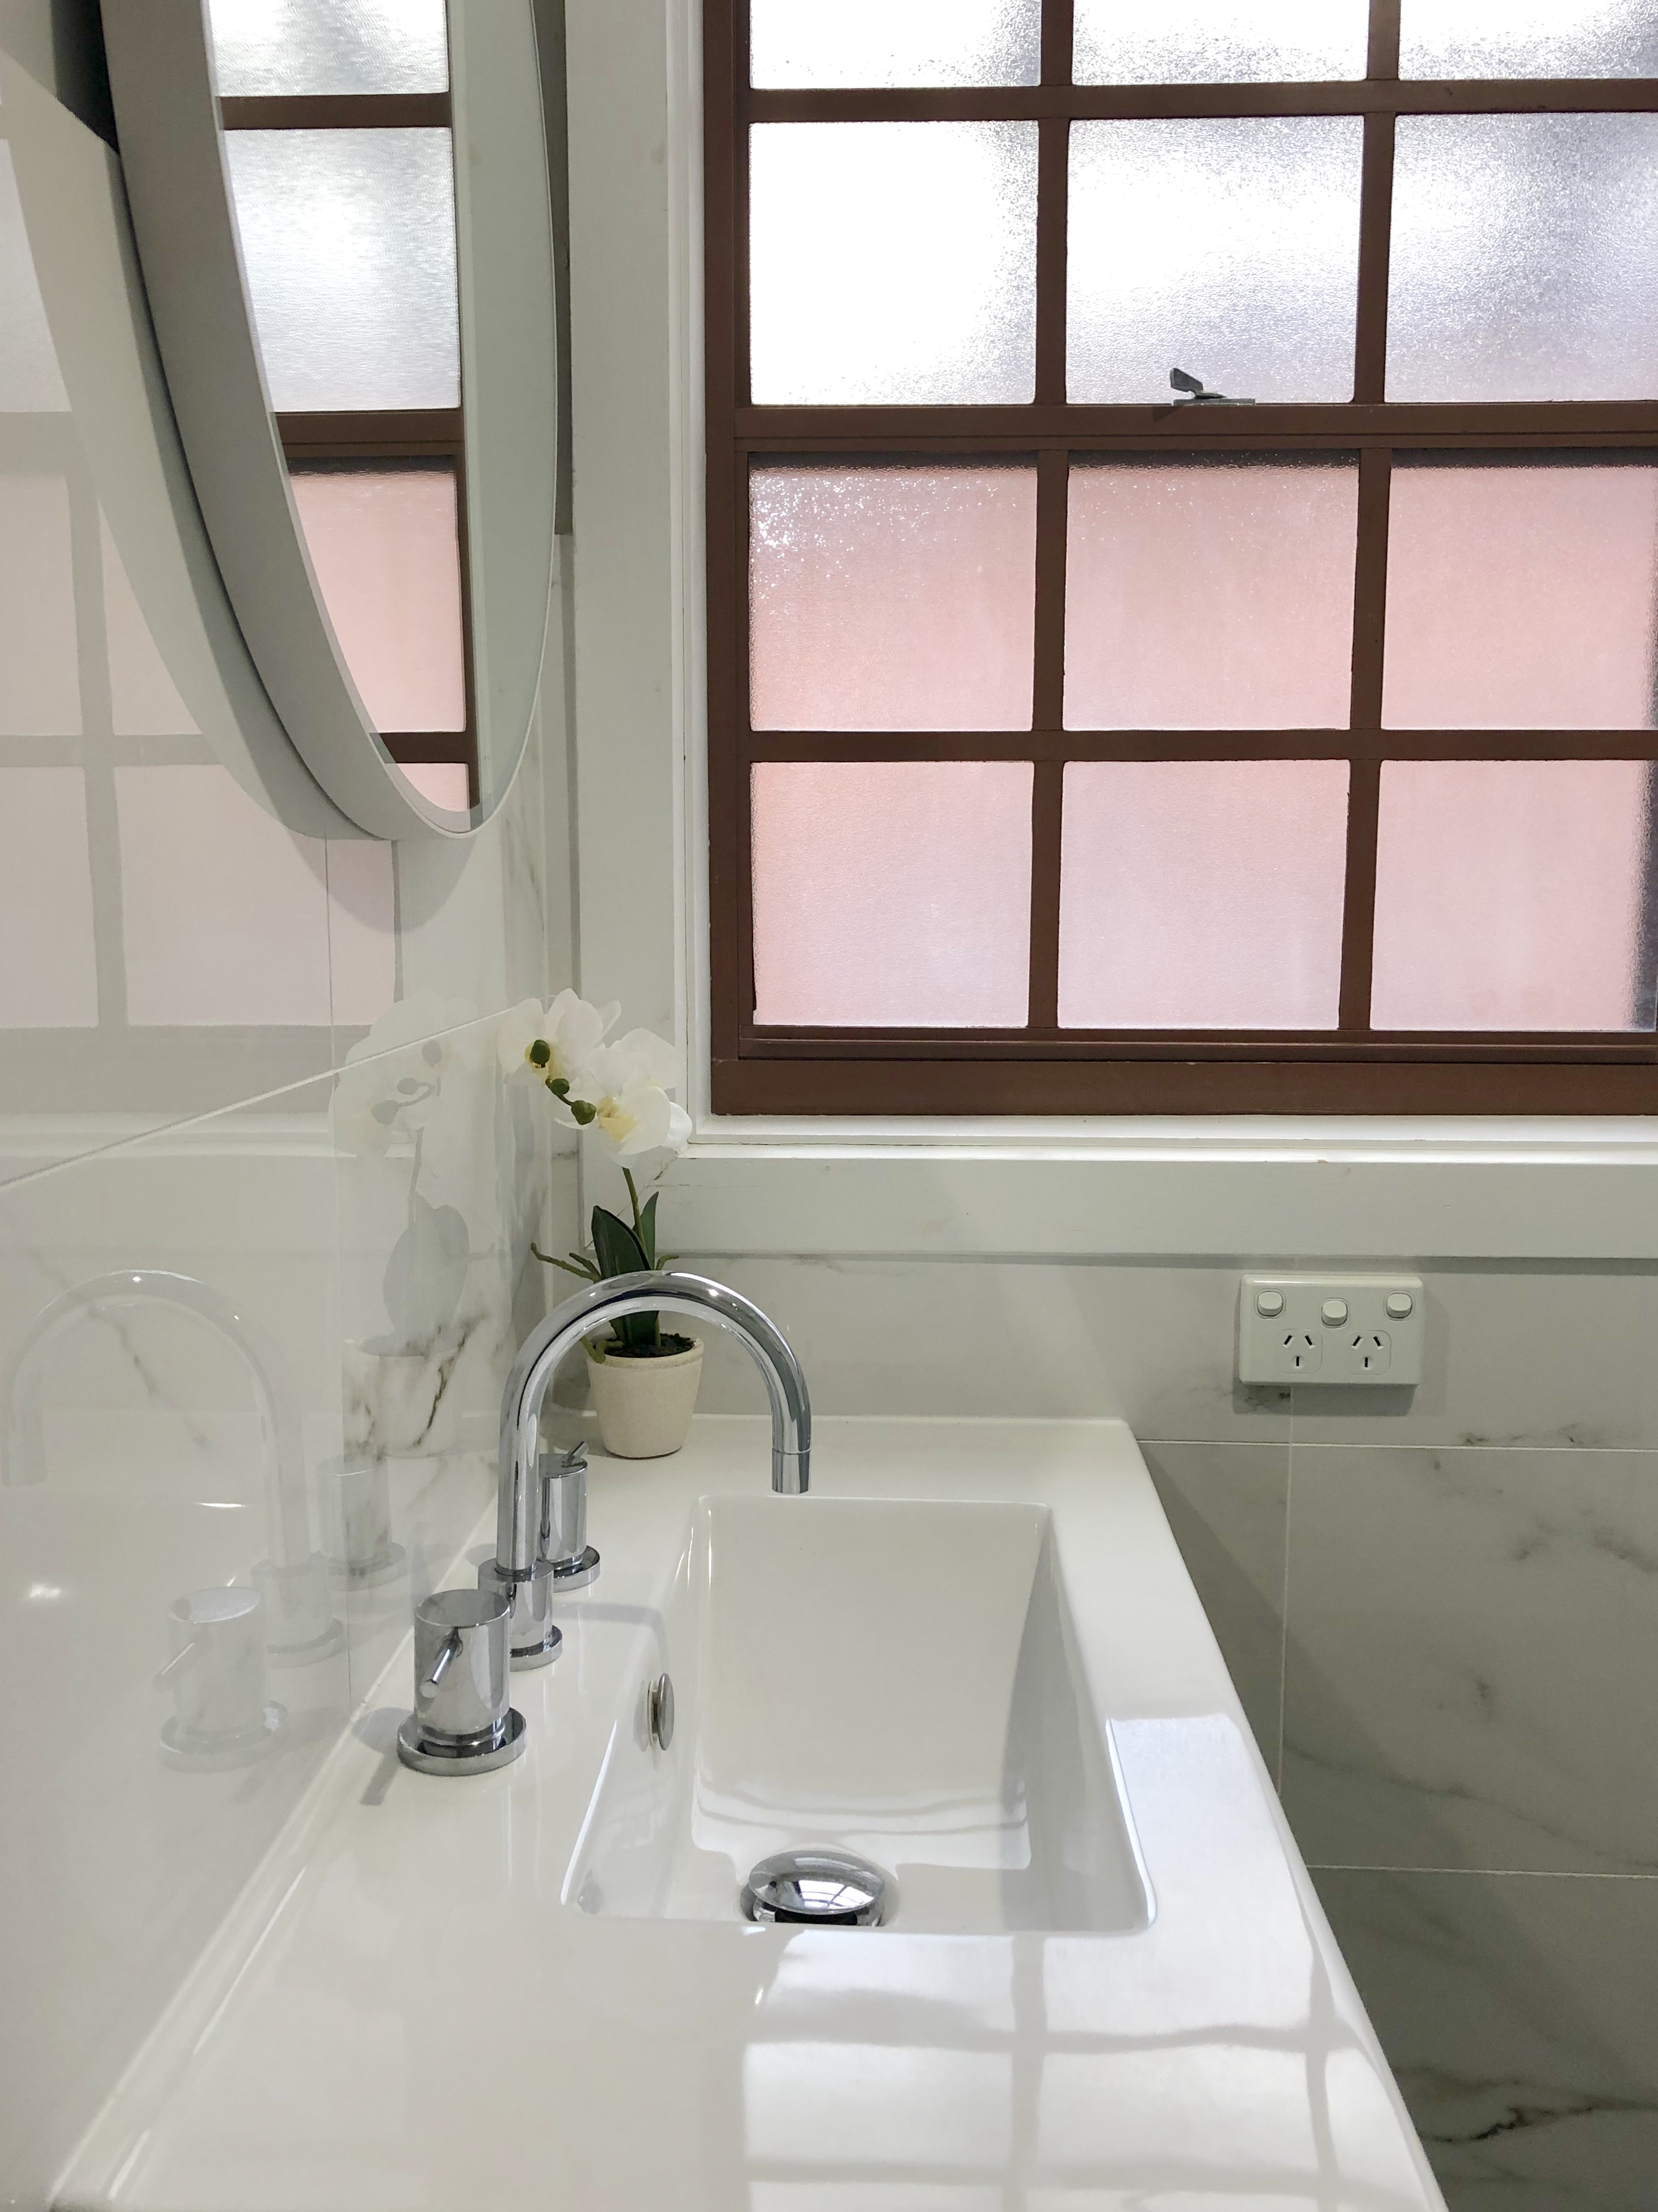 Natural elements blending perfectly - bathroom renovation by Master Bathrooms & Kitchens.